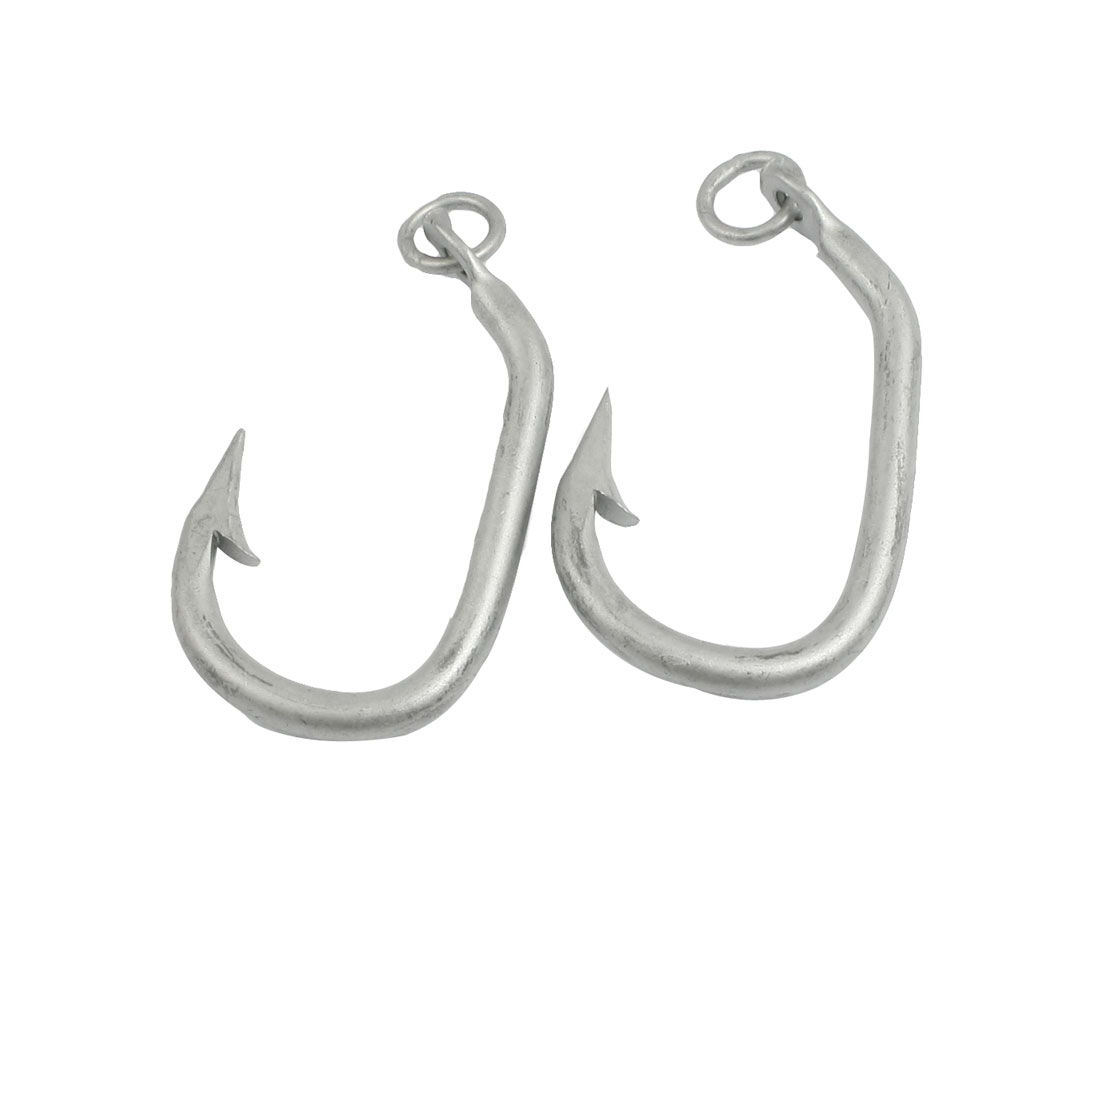 2 Pcs 4.2# Gray Eyeless Sharp Bait Barb Fishhook Fishing Tool